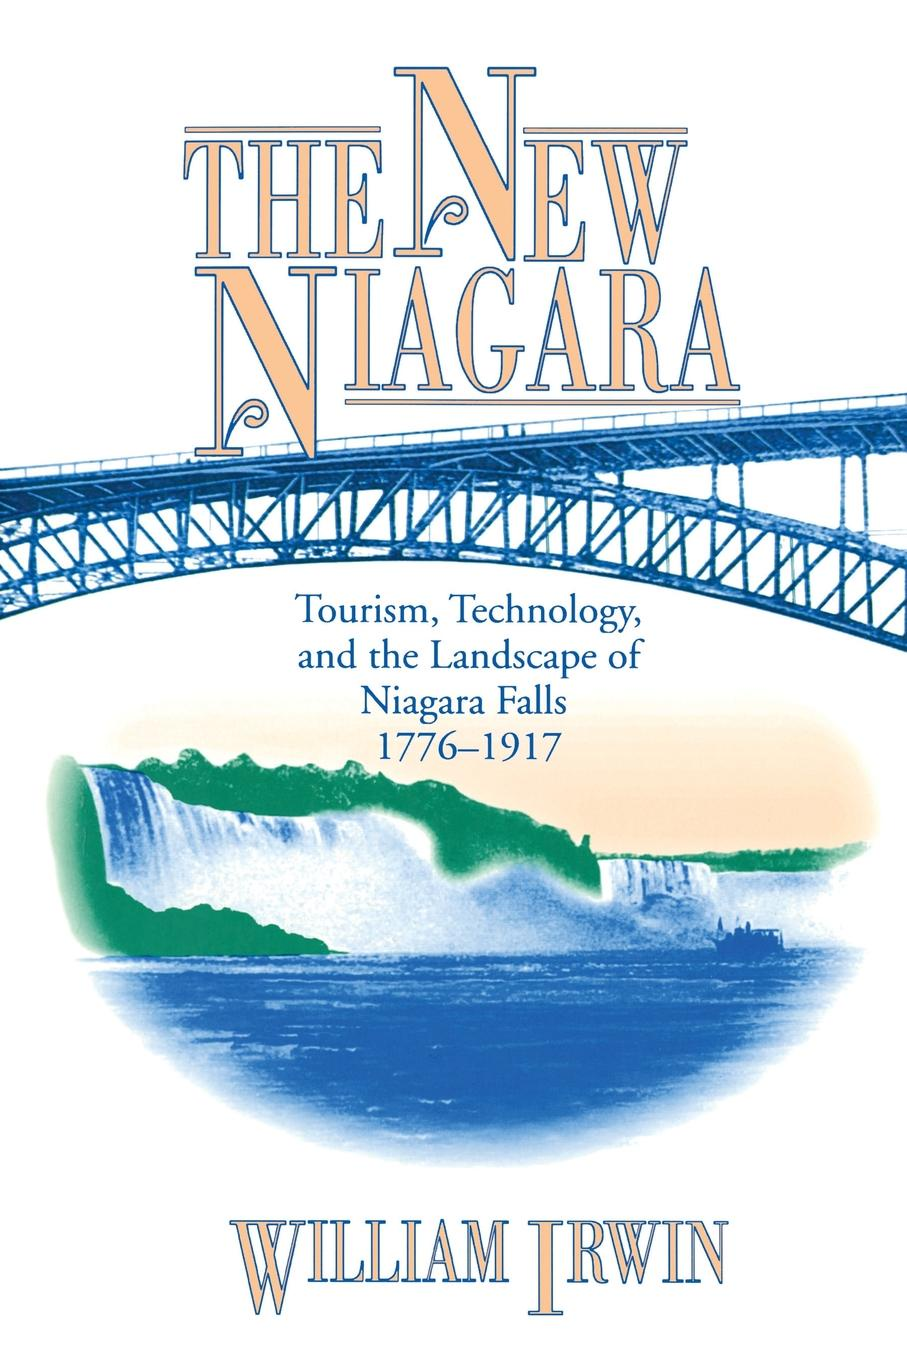 William Irwin. The New Niagara. Tourism, Technology, and the Landscape of Niagara Falls, 1776-1917